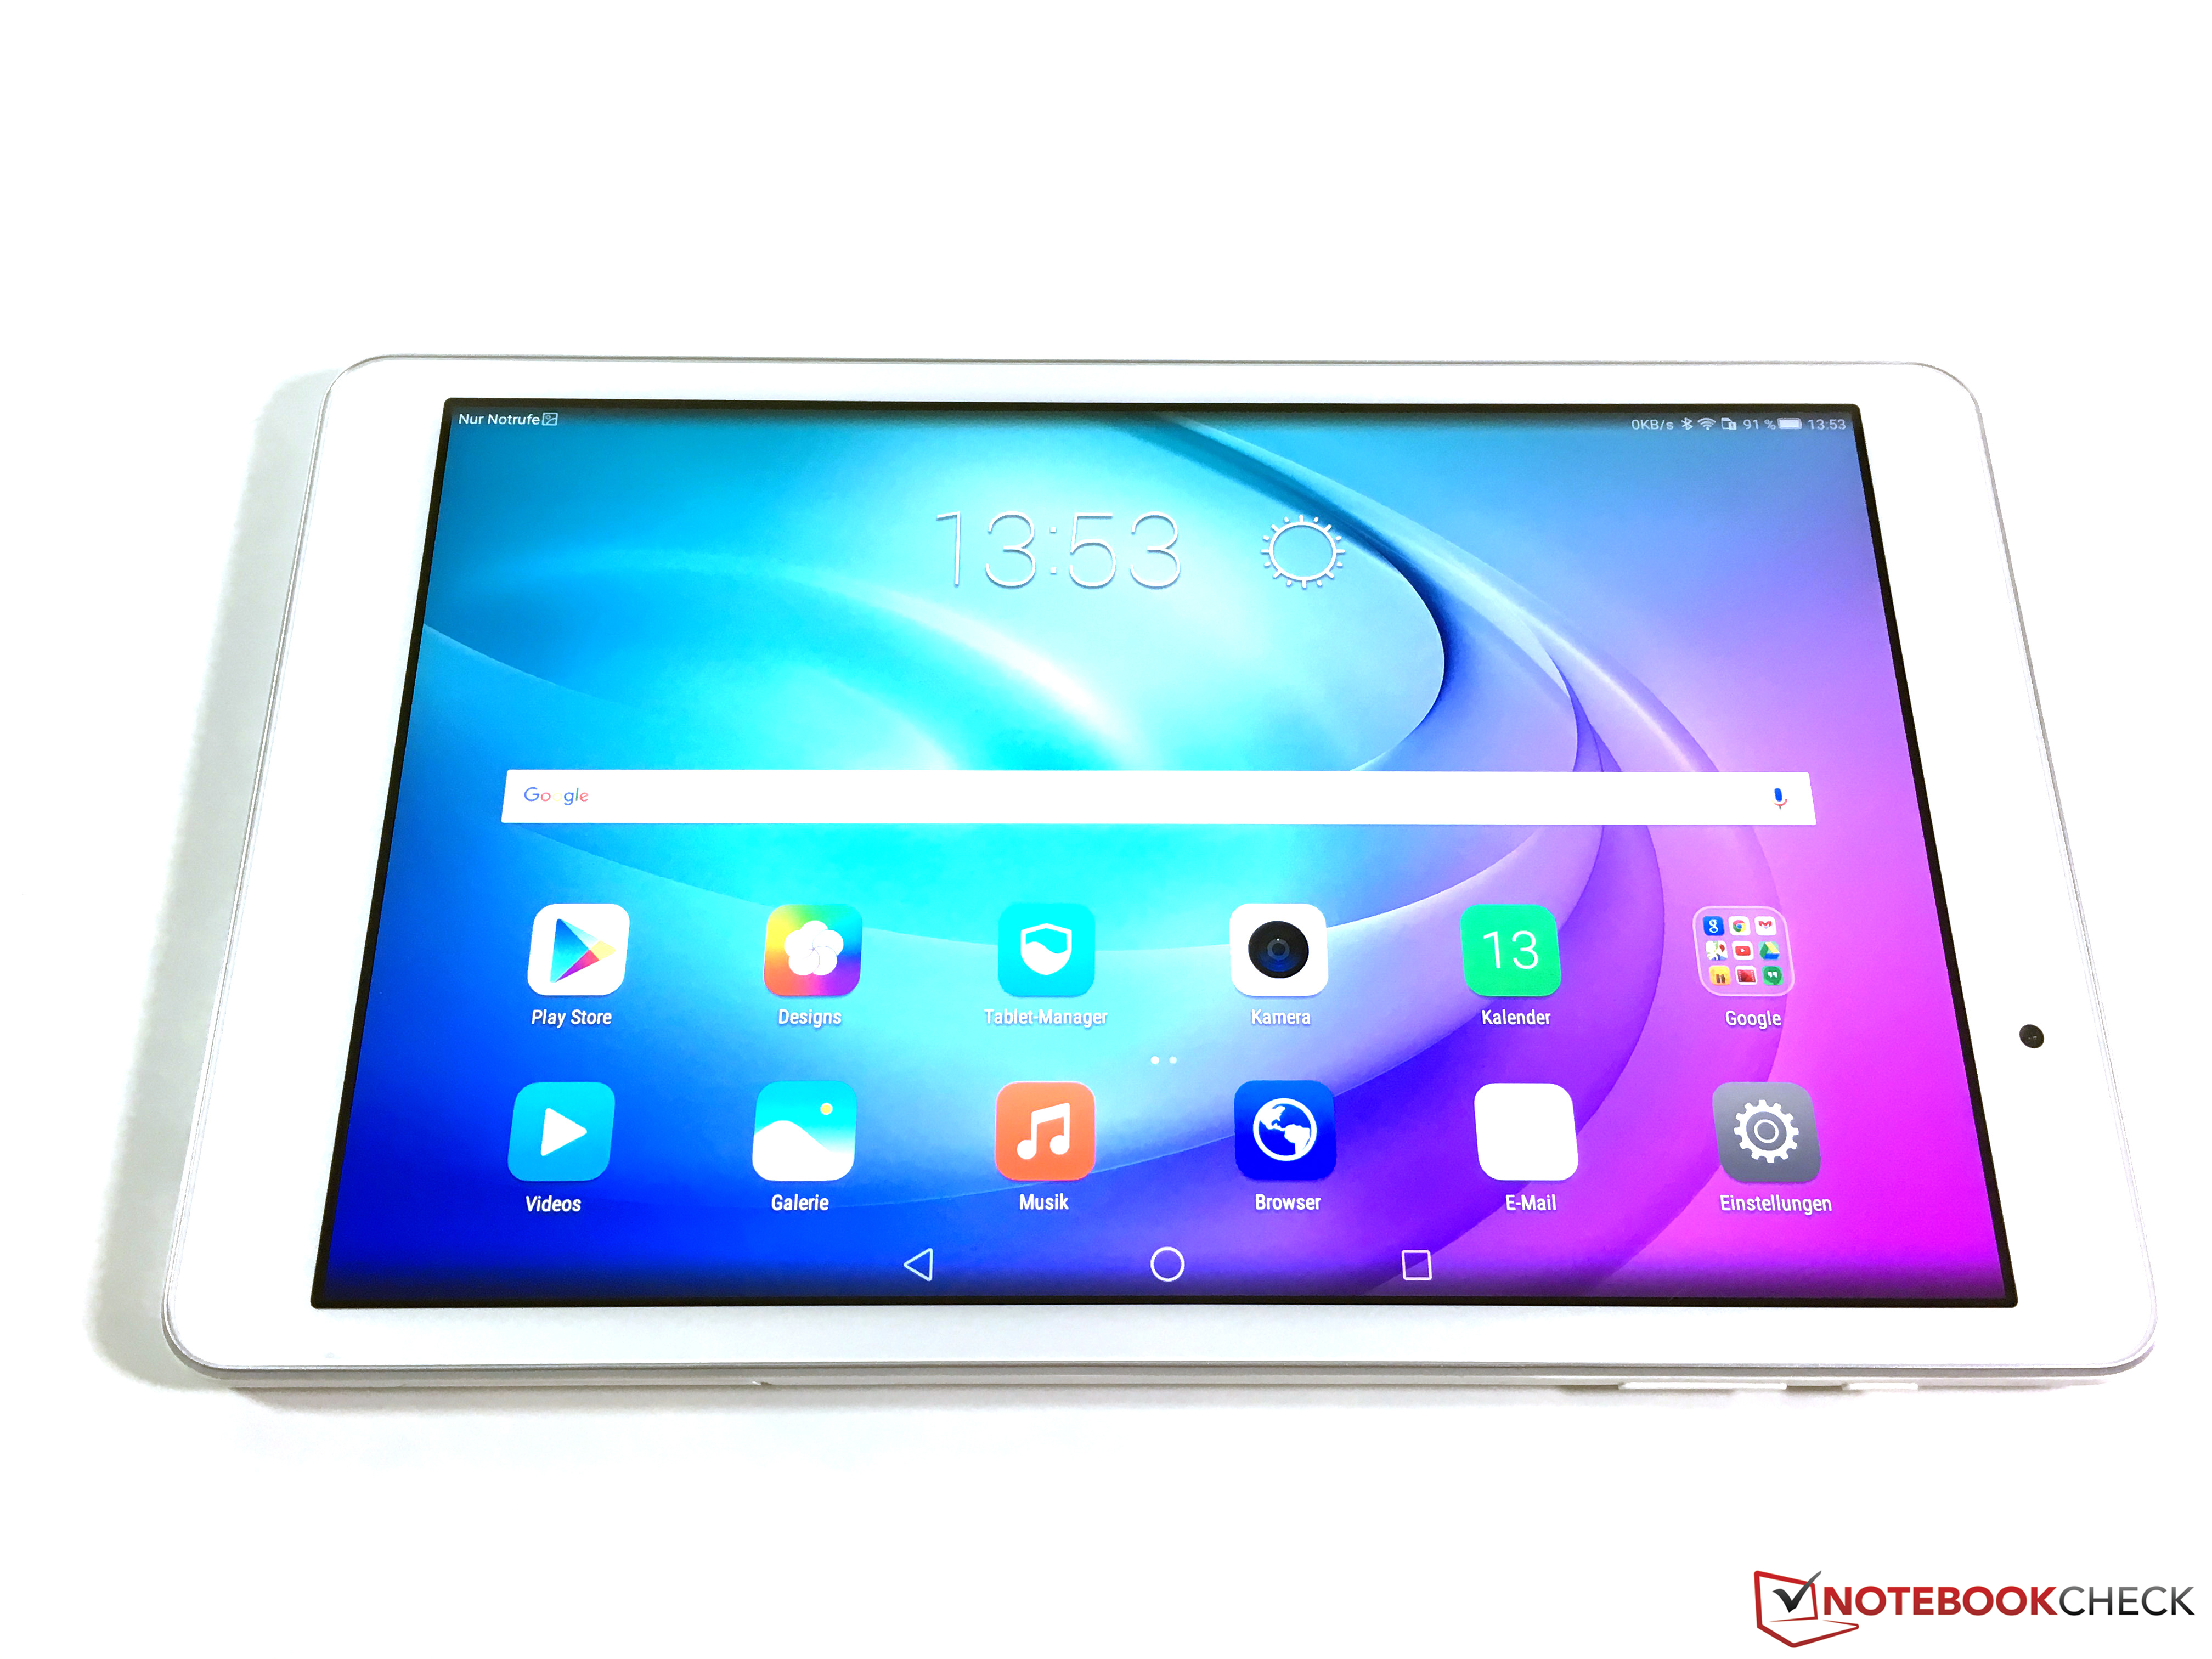 Huawei MediaPad T2 10.0 Pro Tablet Review